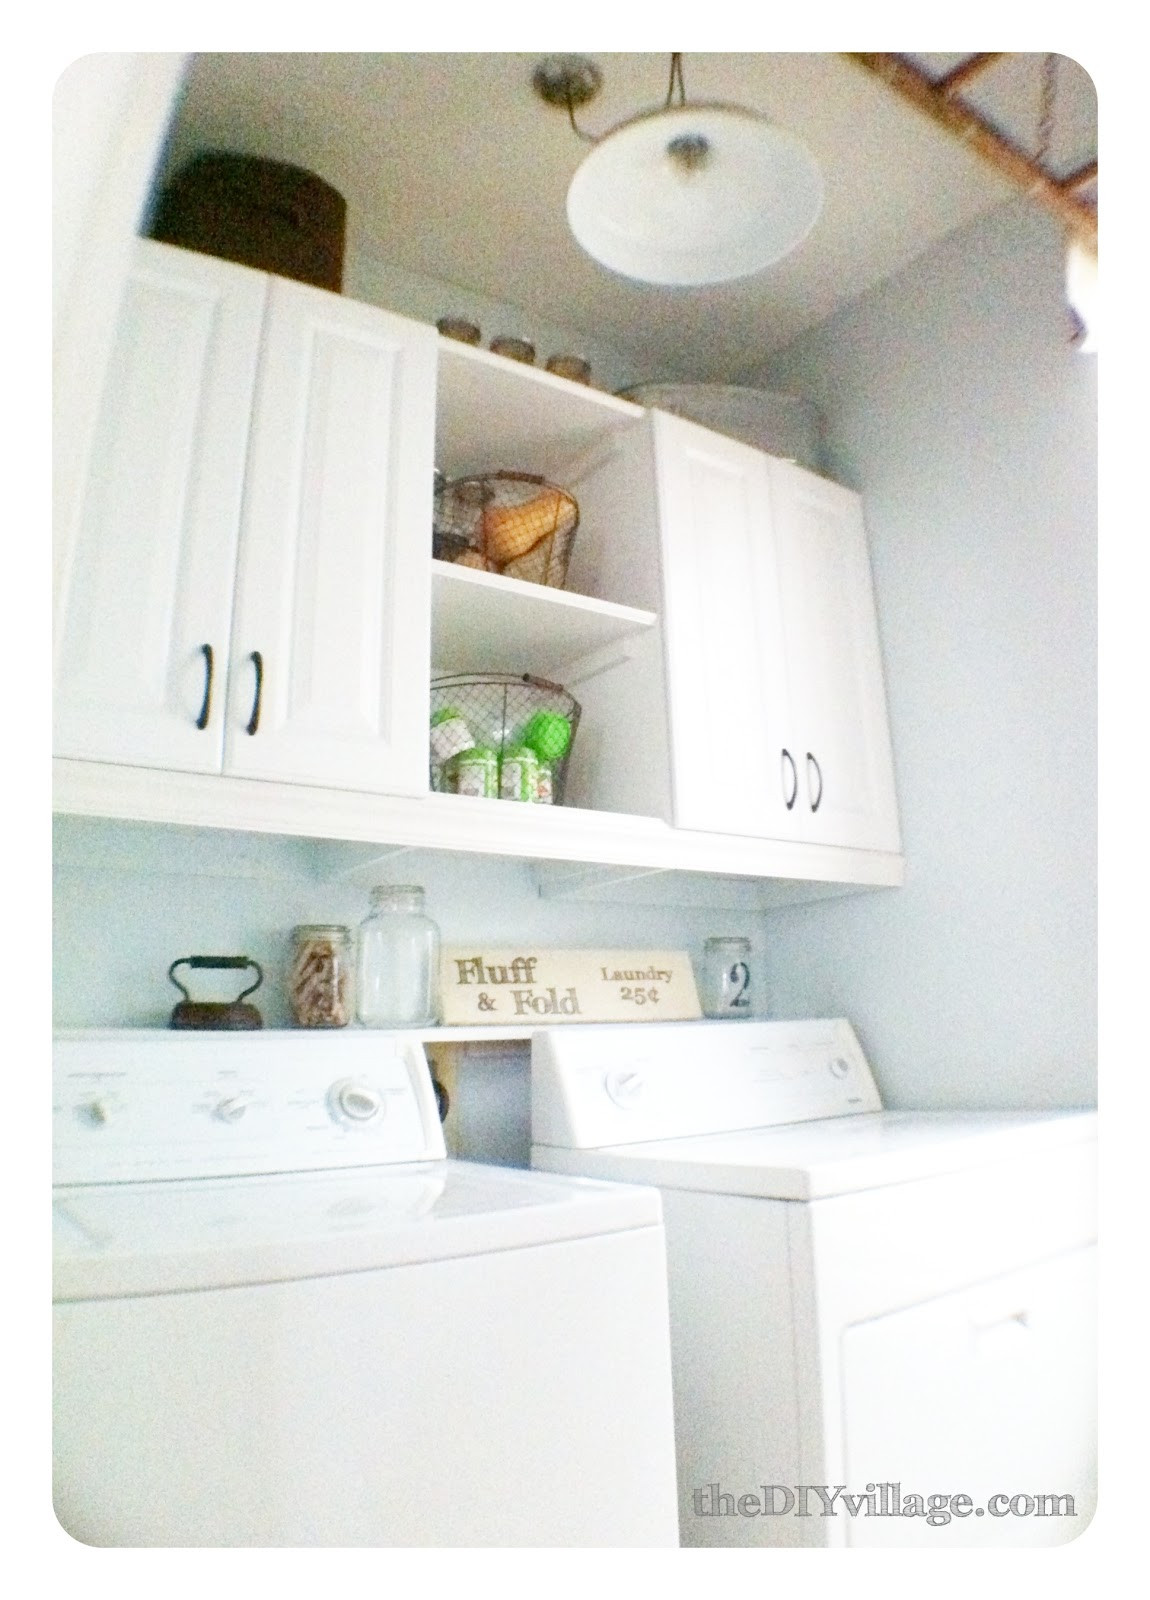 Best ideas about Laundry Room Makeover . Save or Pin Laundry Room Makeover the DIY village Now.